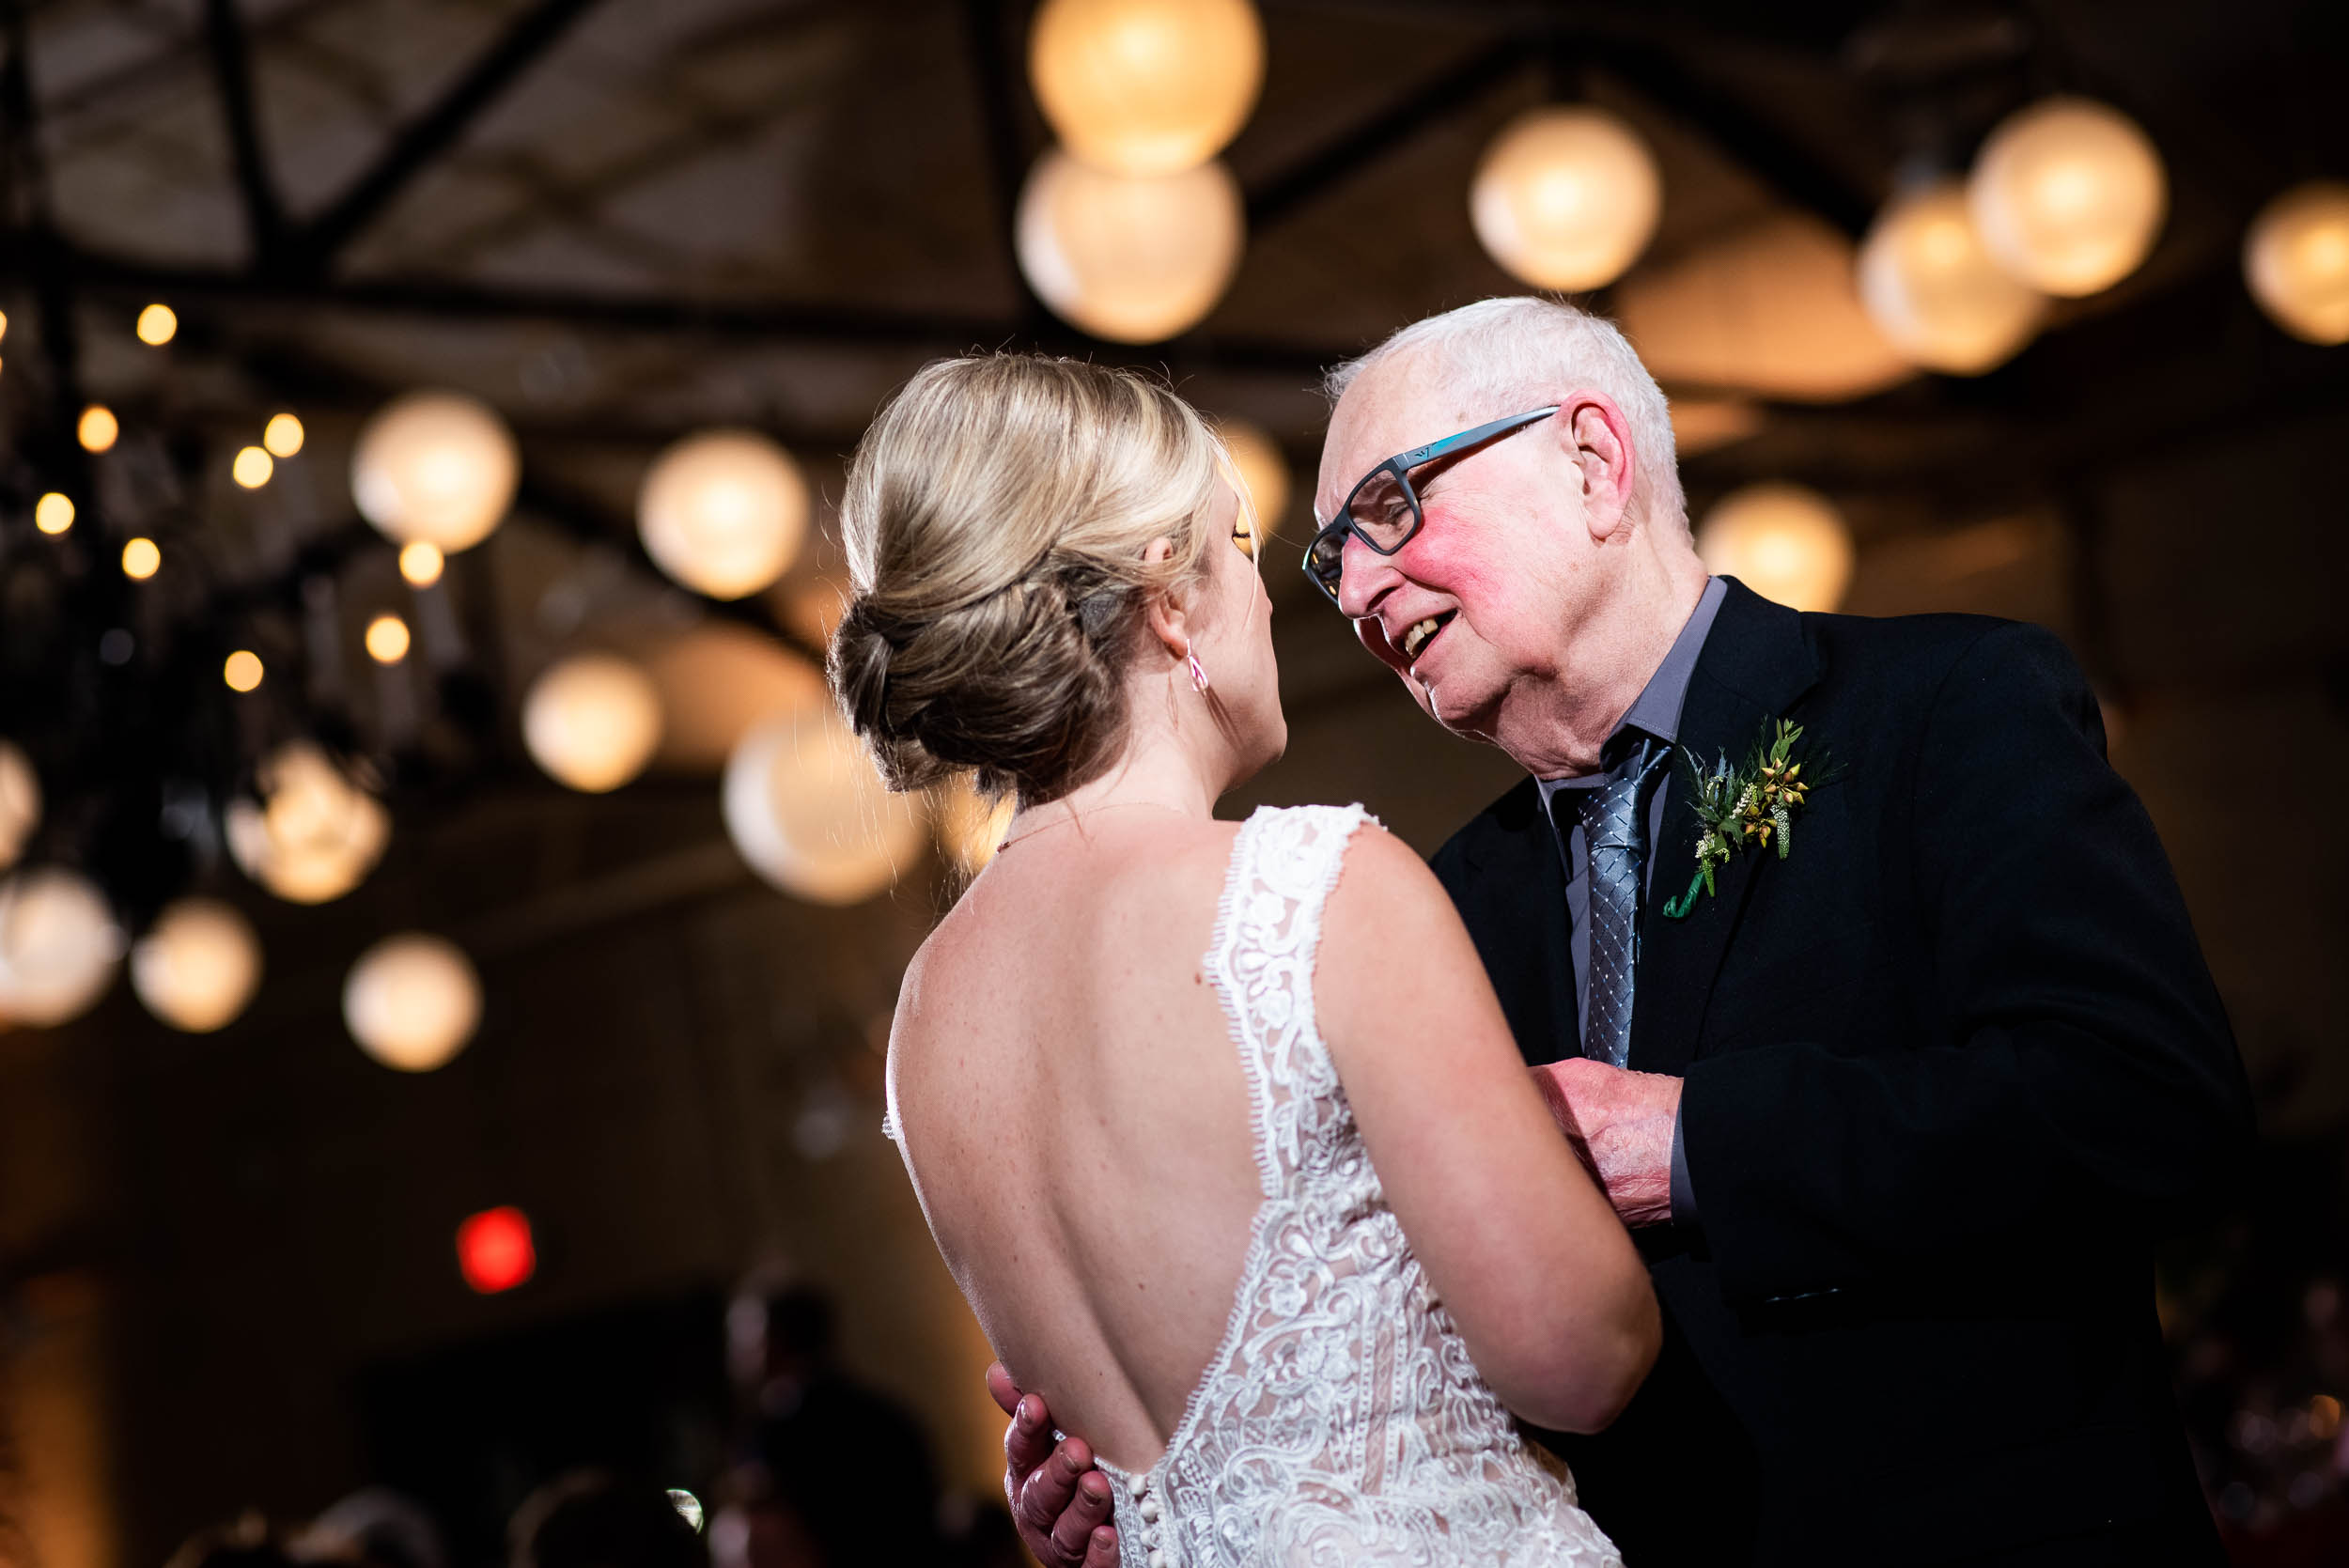 Father/daughter dance: Modern industrial Chicago wedding inside Prairie Street Brewhouse captured by J. Brown Photography. Find more wedding ideas at jbrownphotography.com!